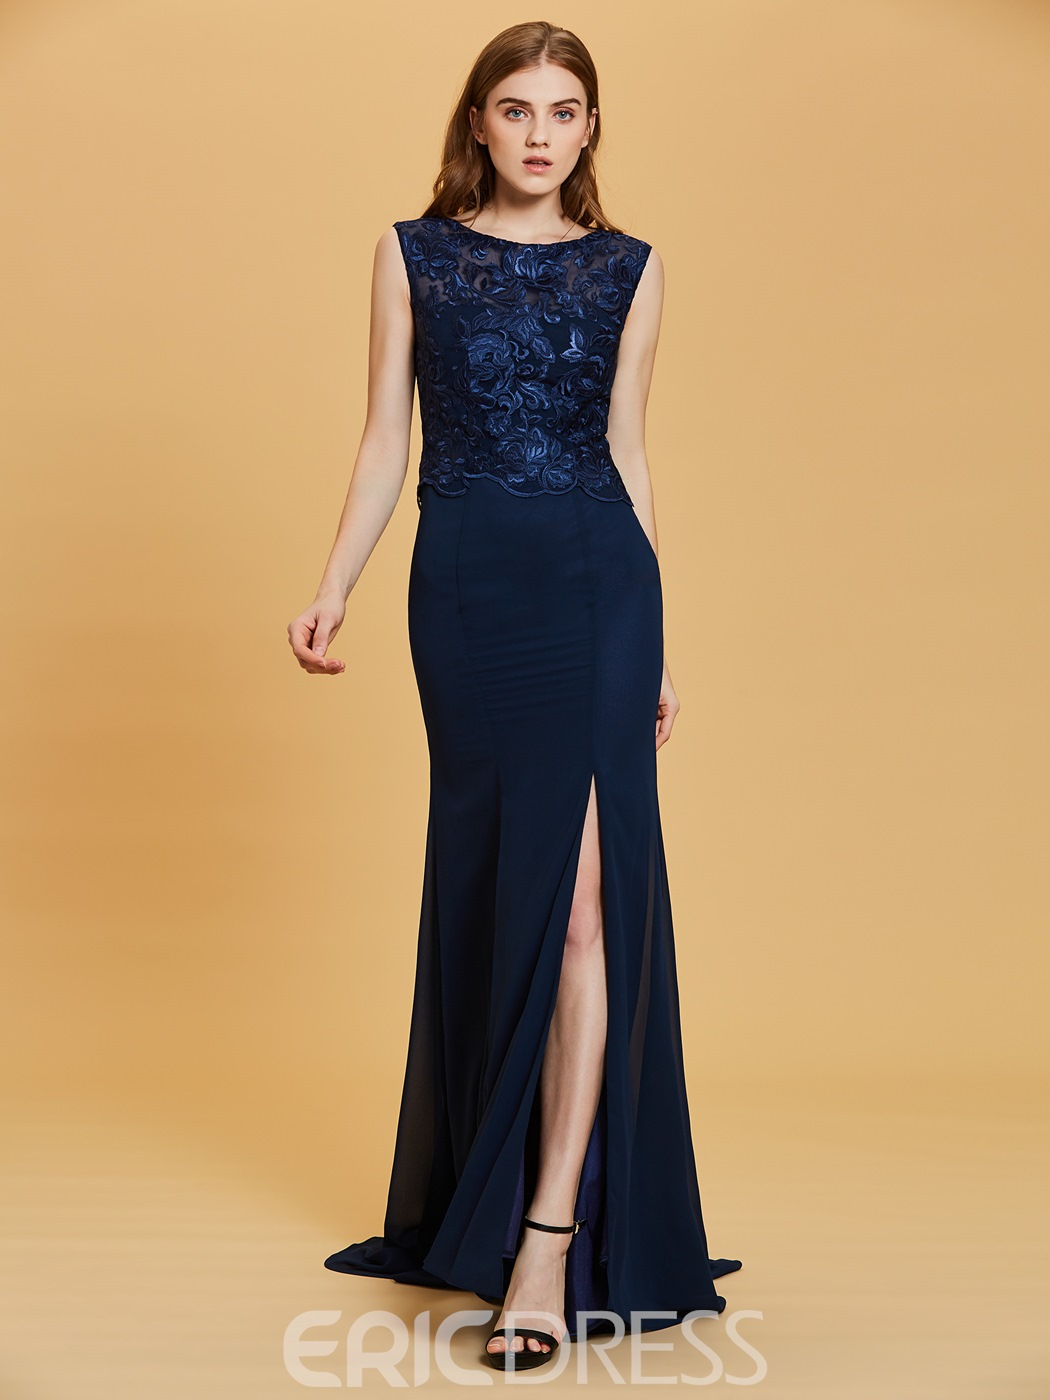 Ericdress Lace Appliques Split-Front A Line Evening Dress